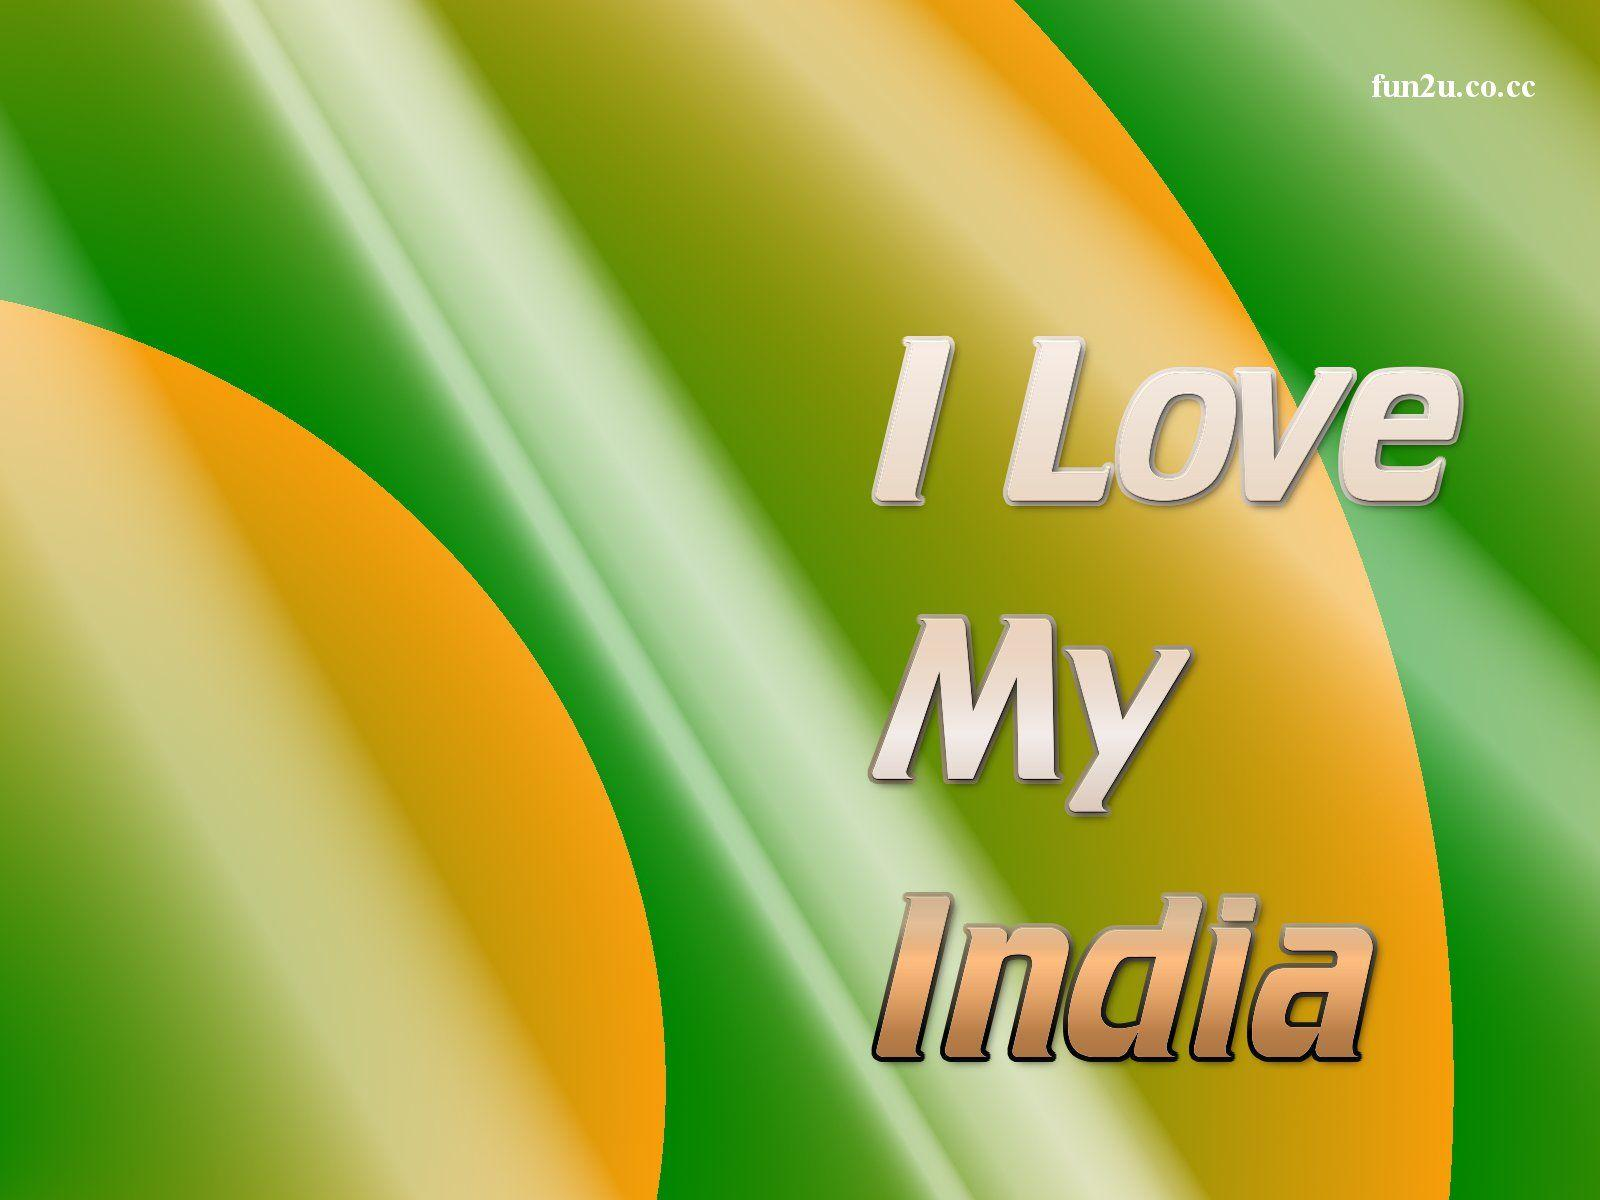 I Love My India Wallpaper For Facebook